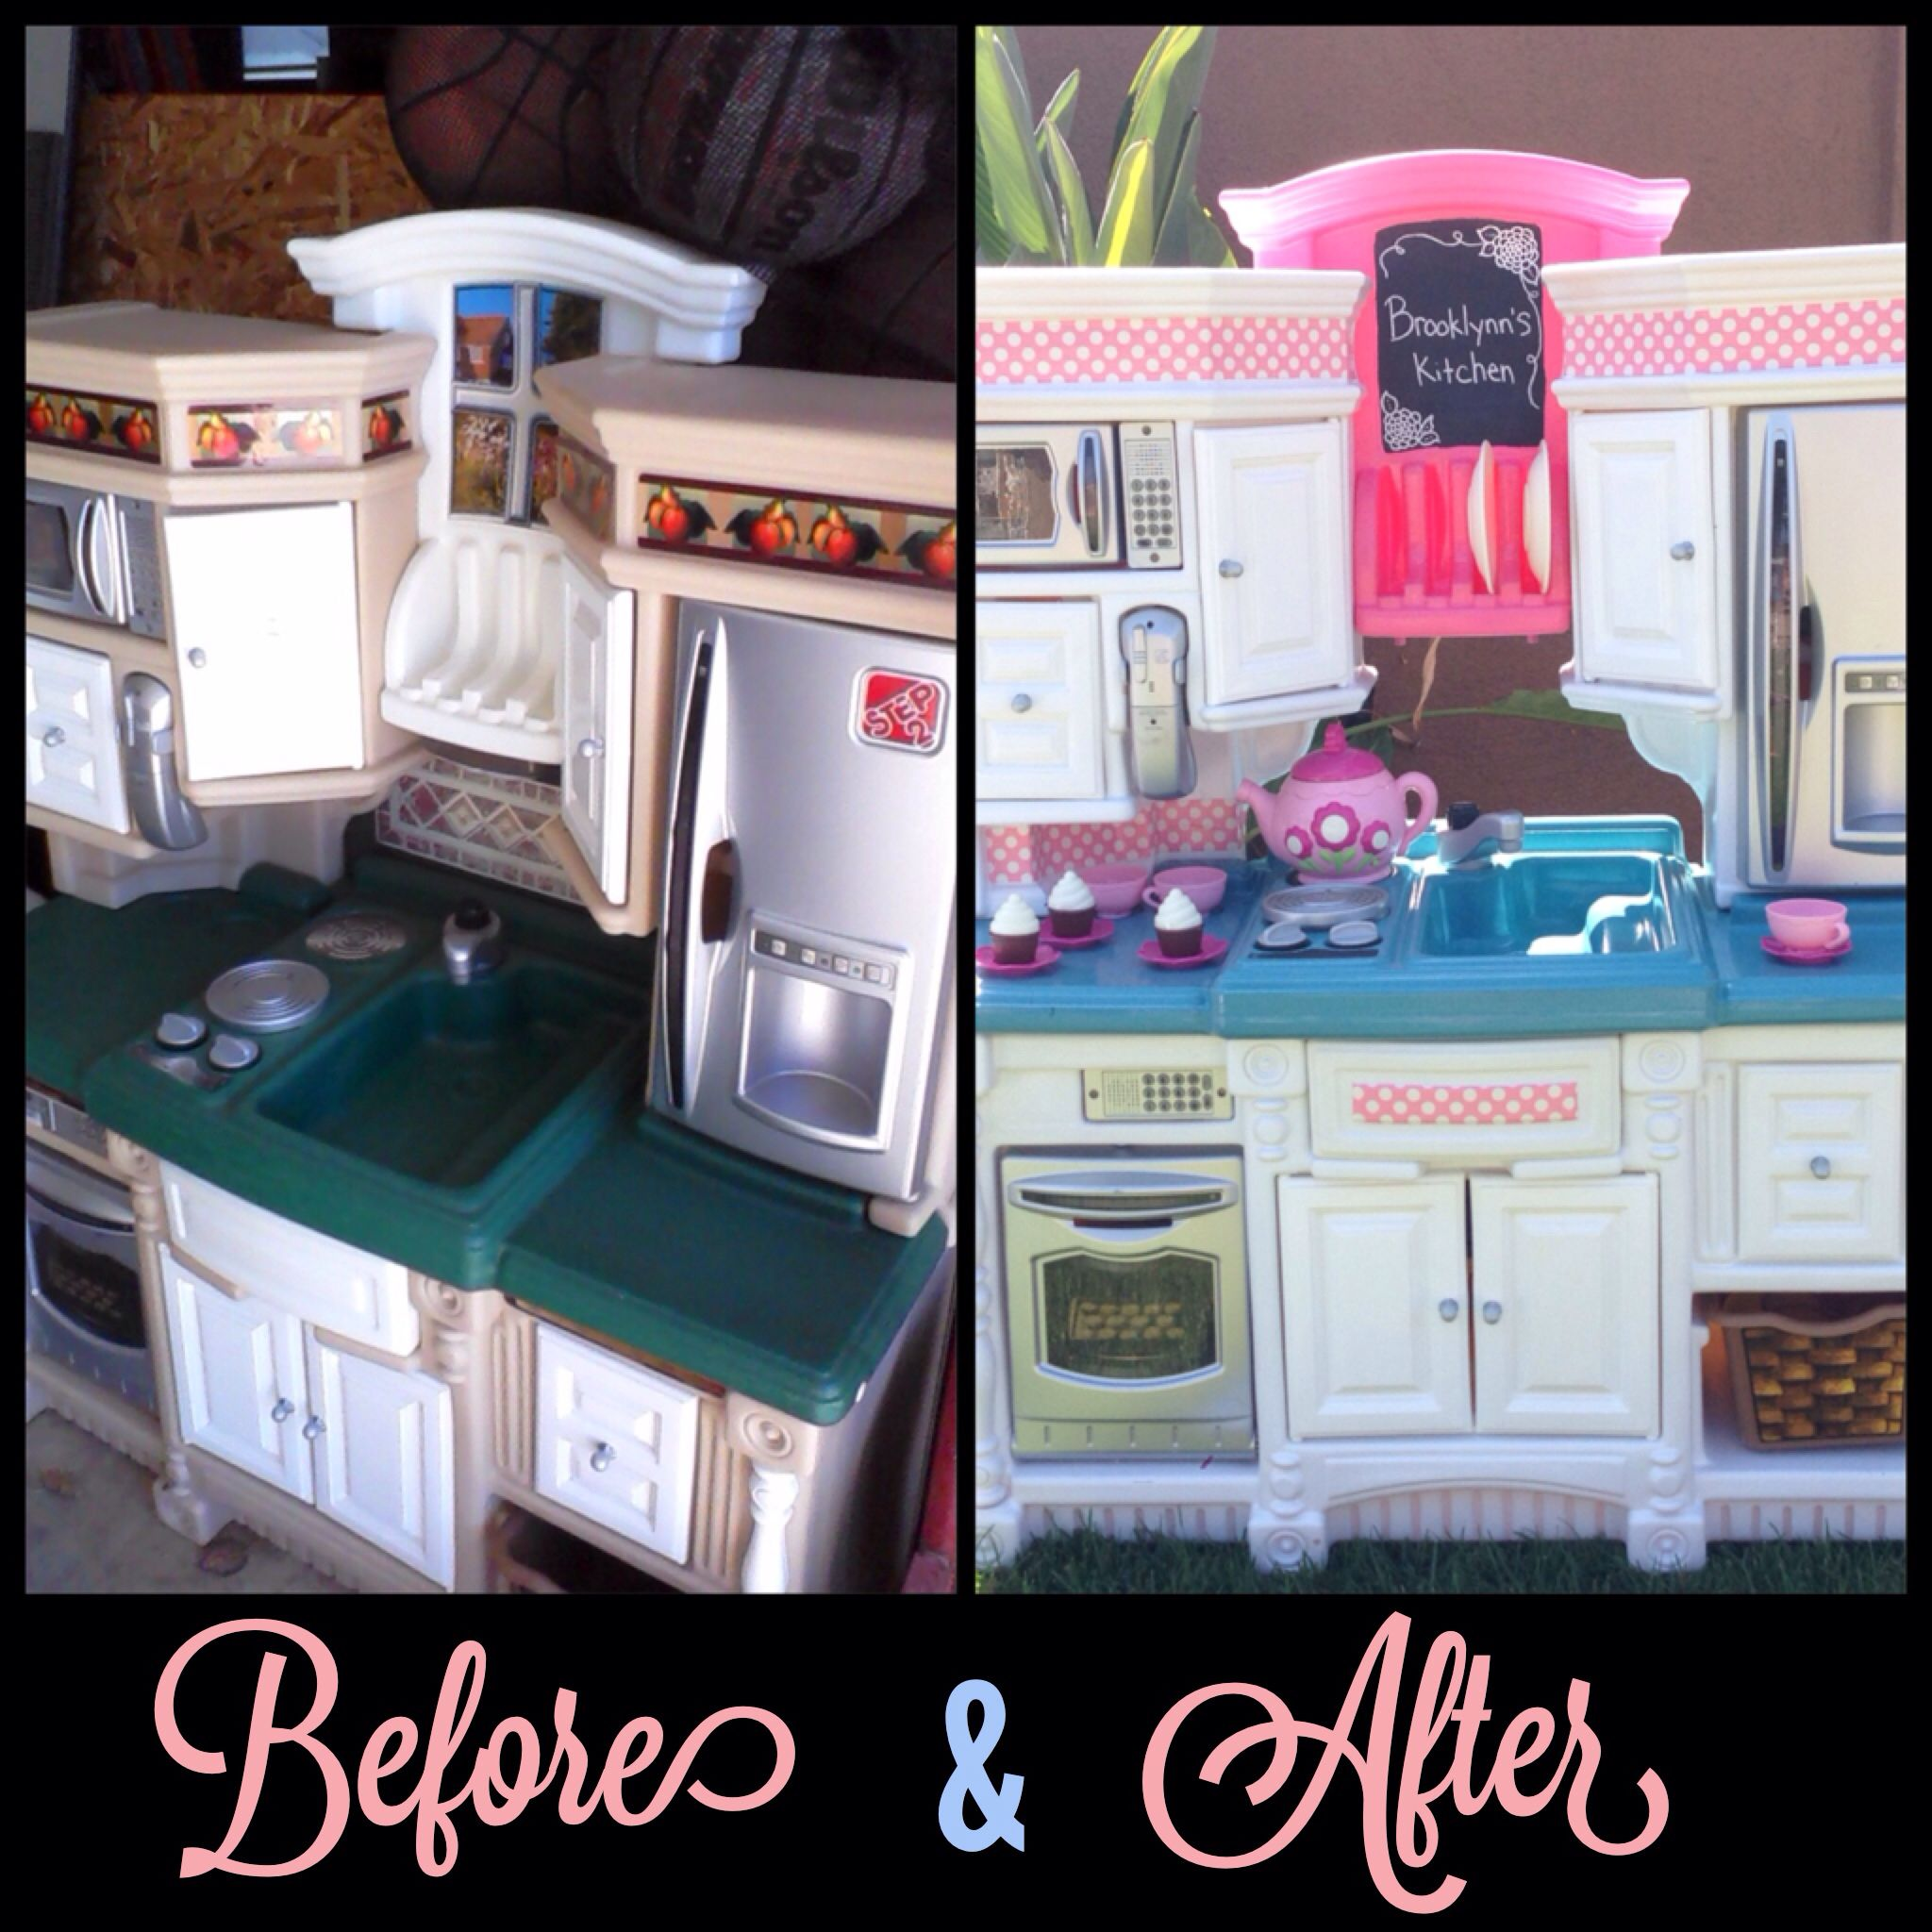 Fisher price kitchen makeover! I used Valspar spray paint